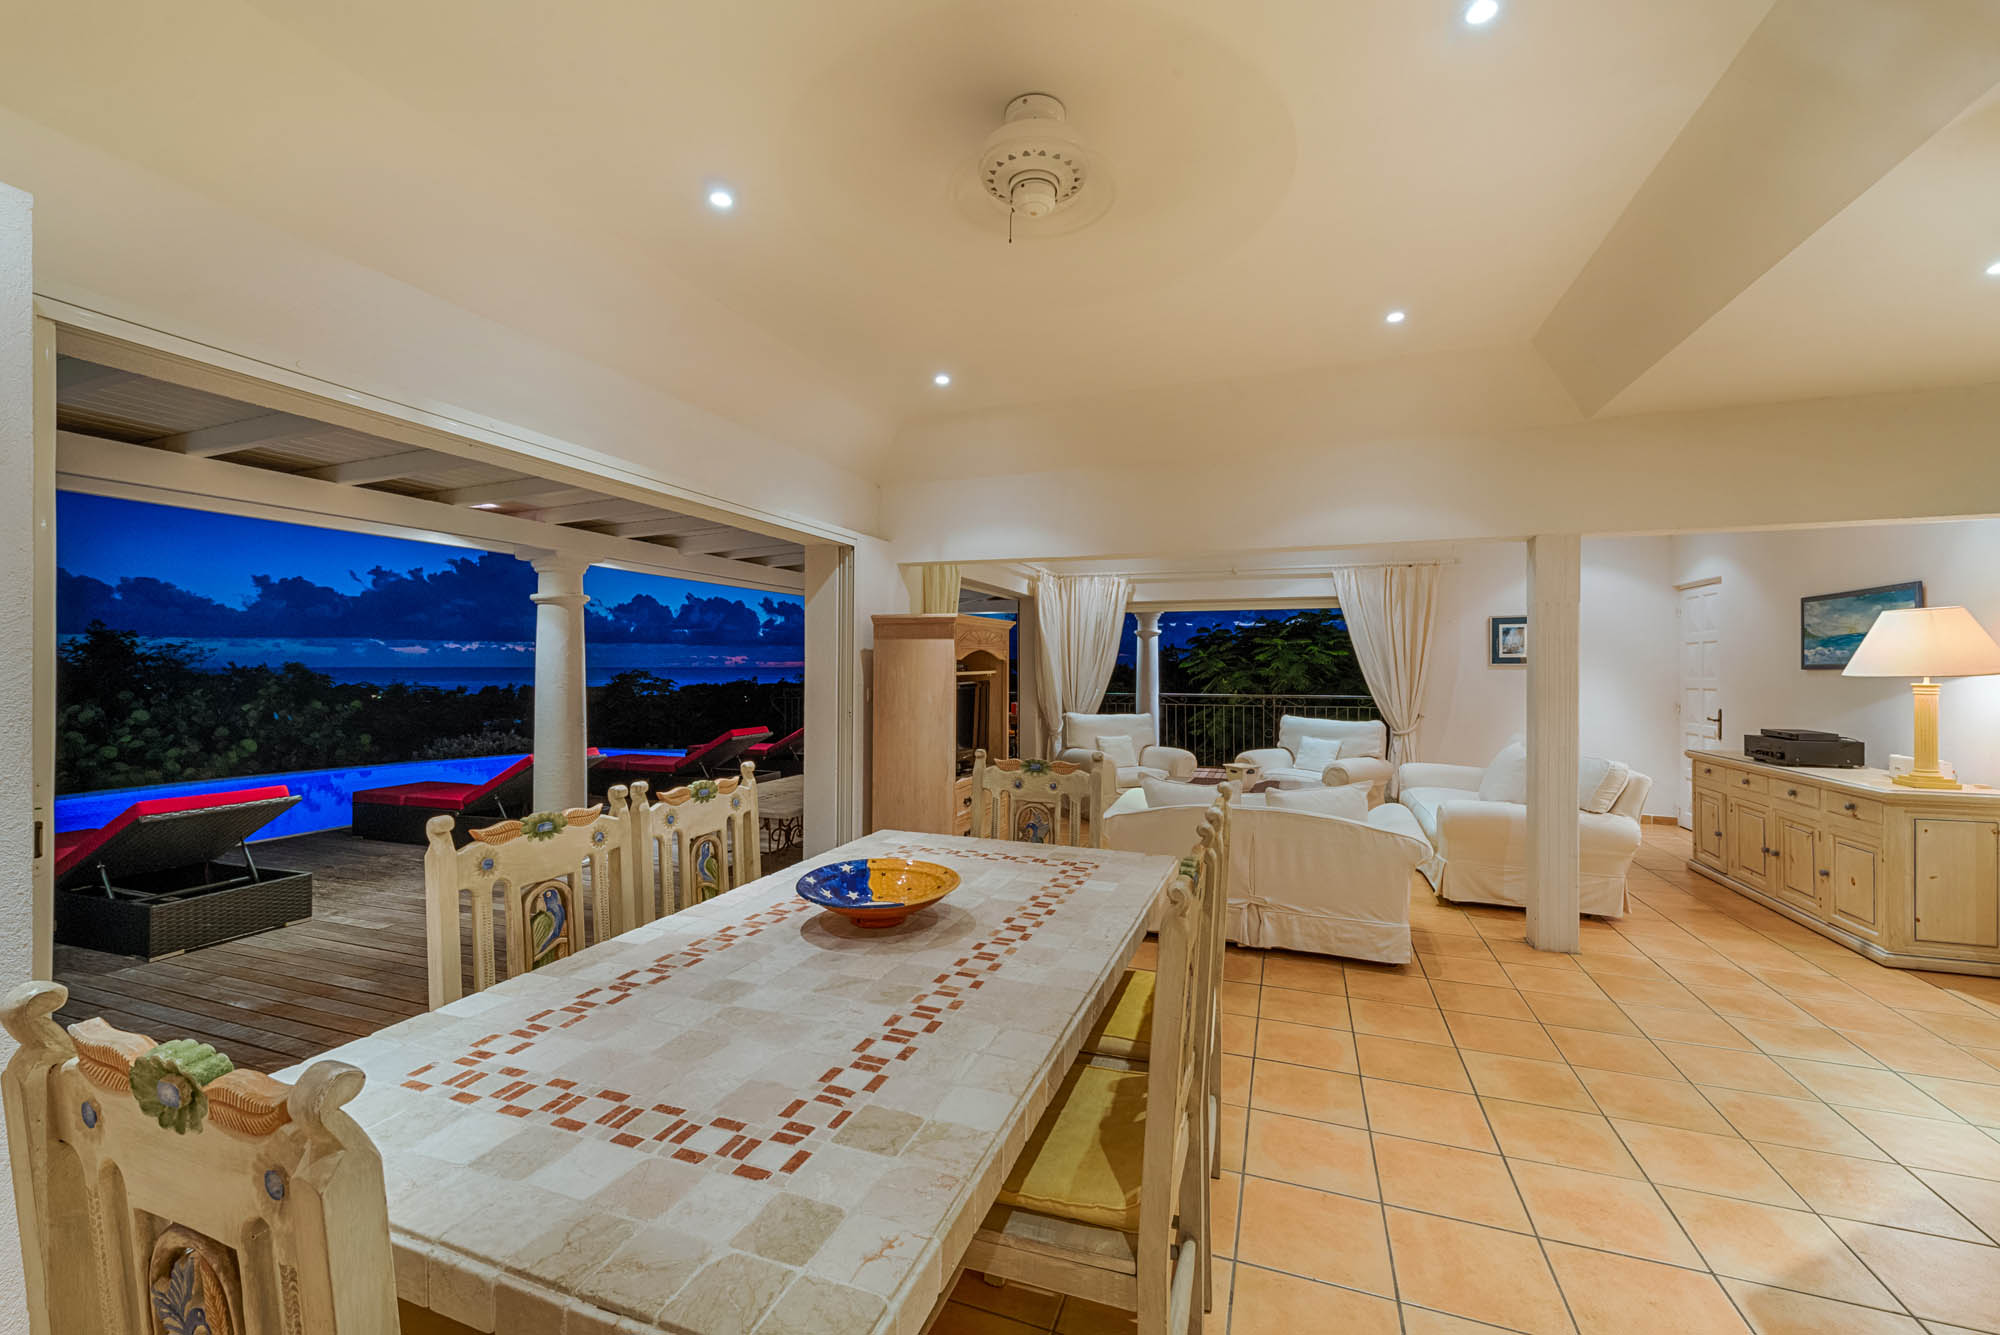 This St. Martin villa rental has romantic atmosphere at night.